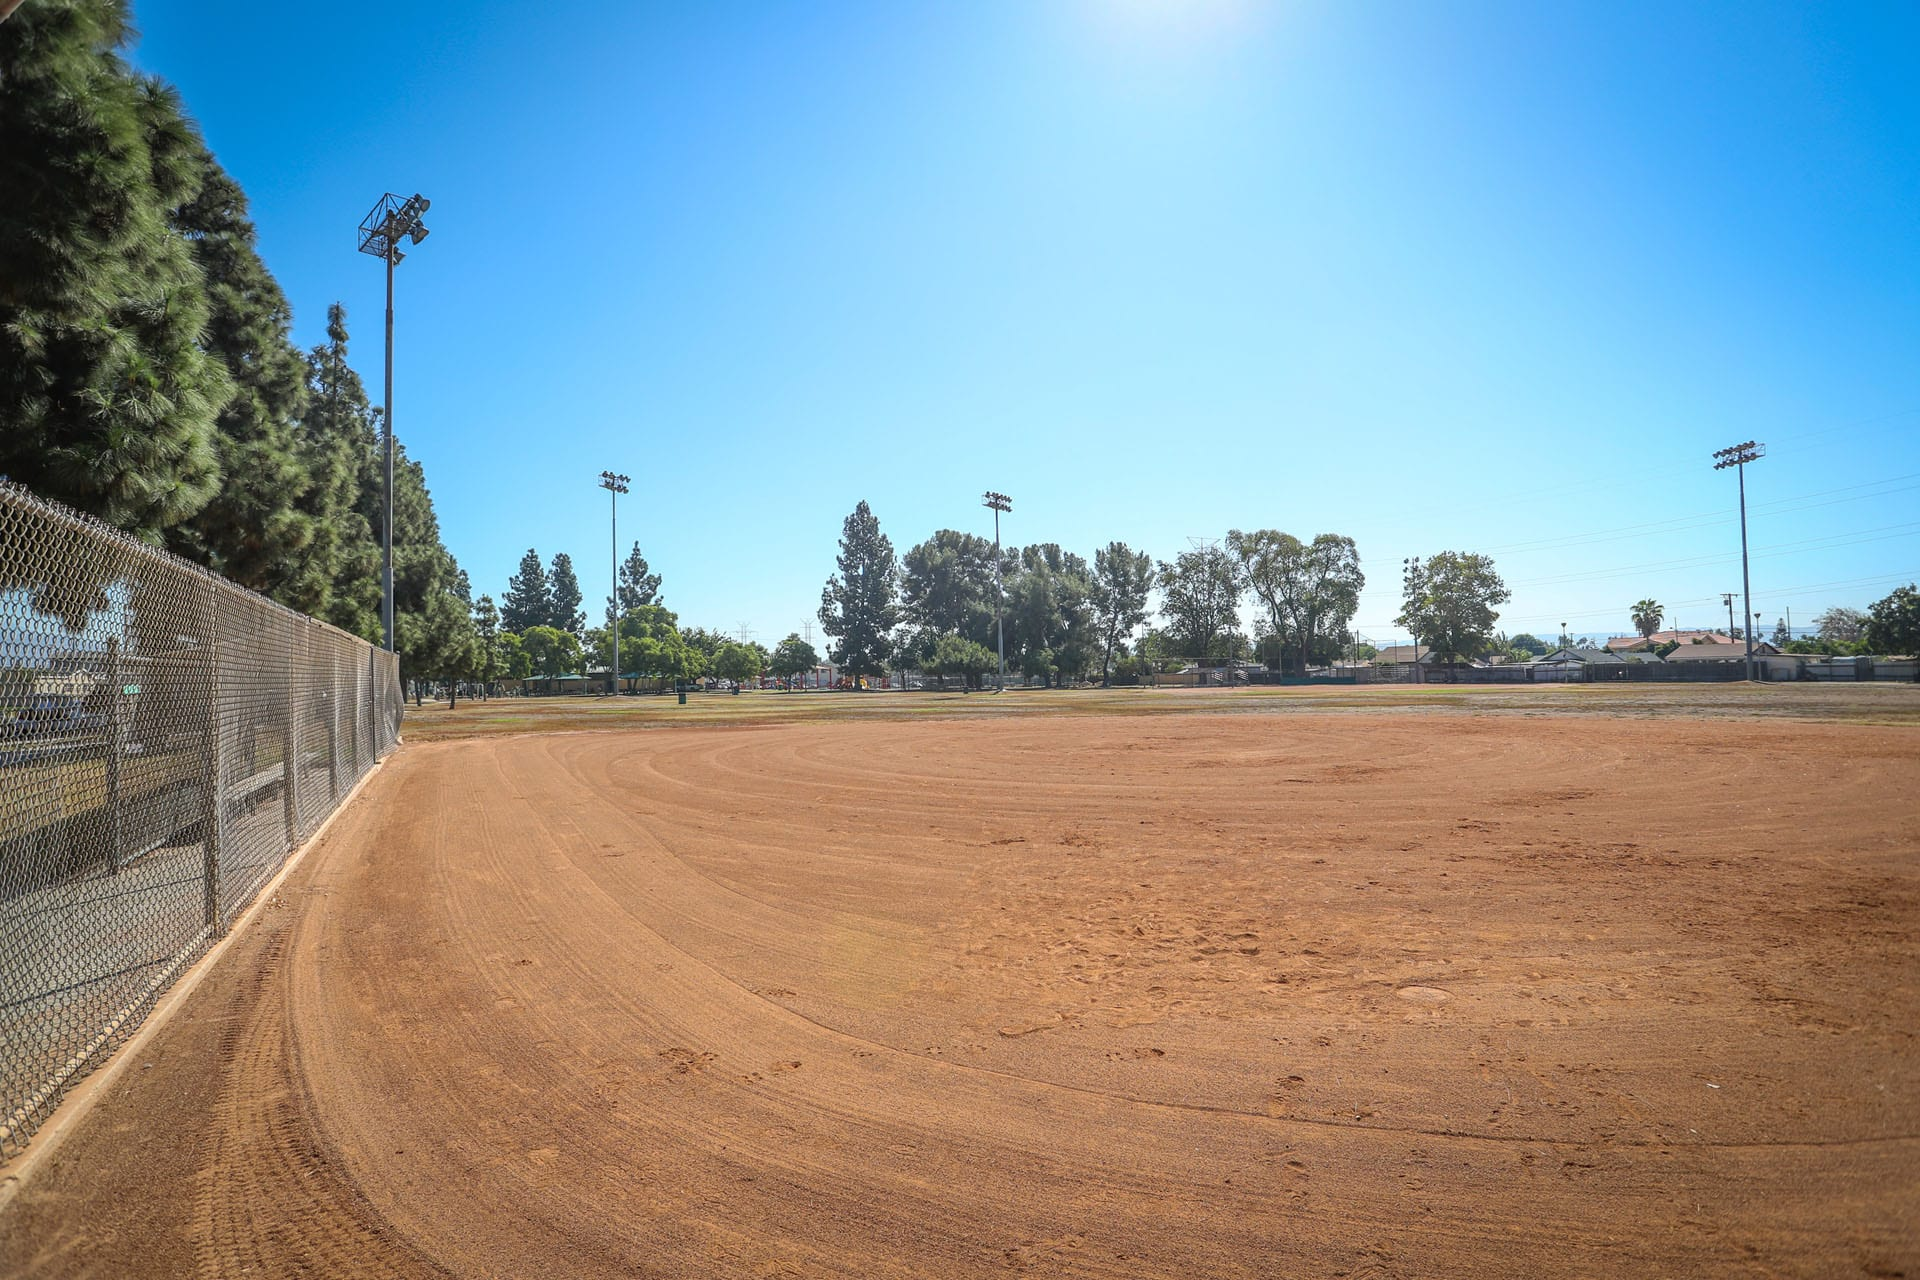 Baseball field dirt area